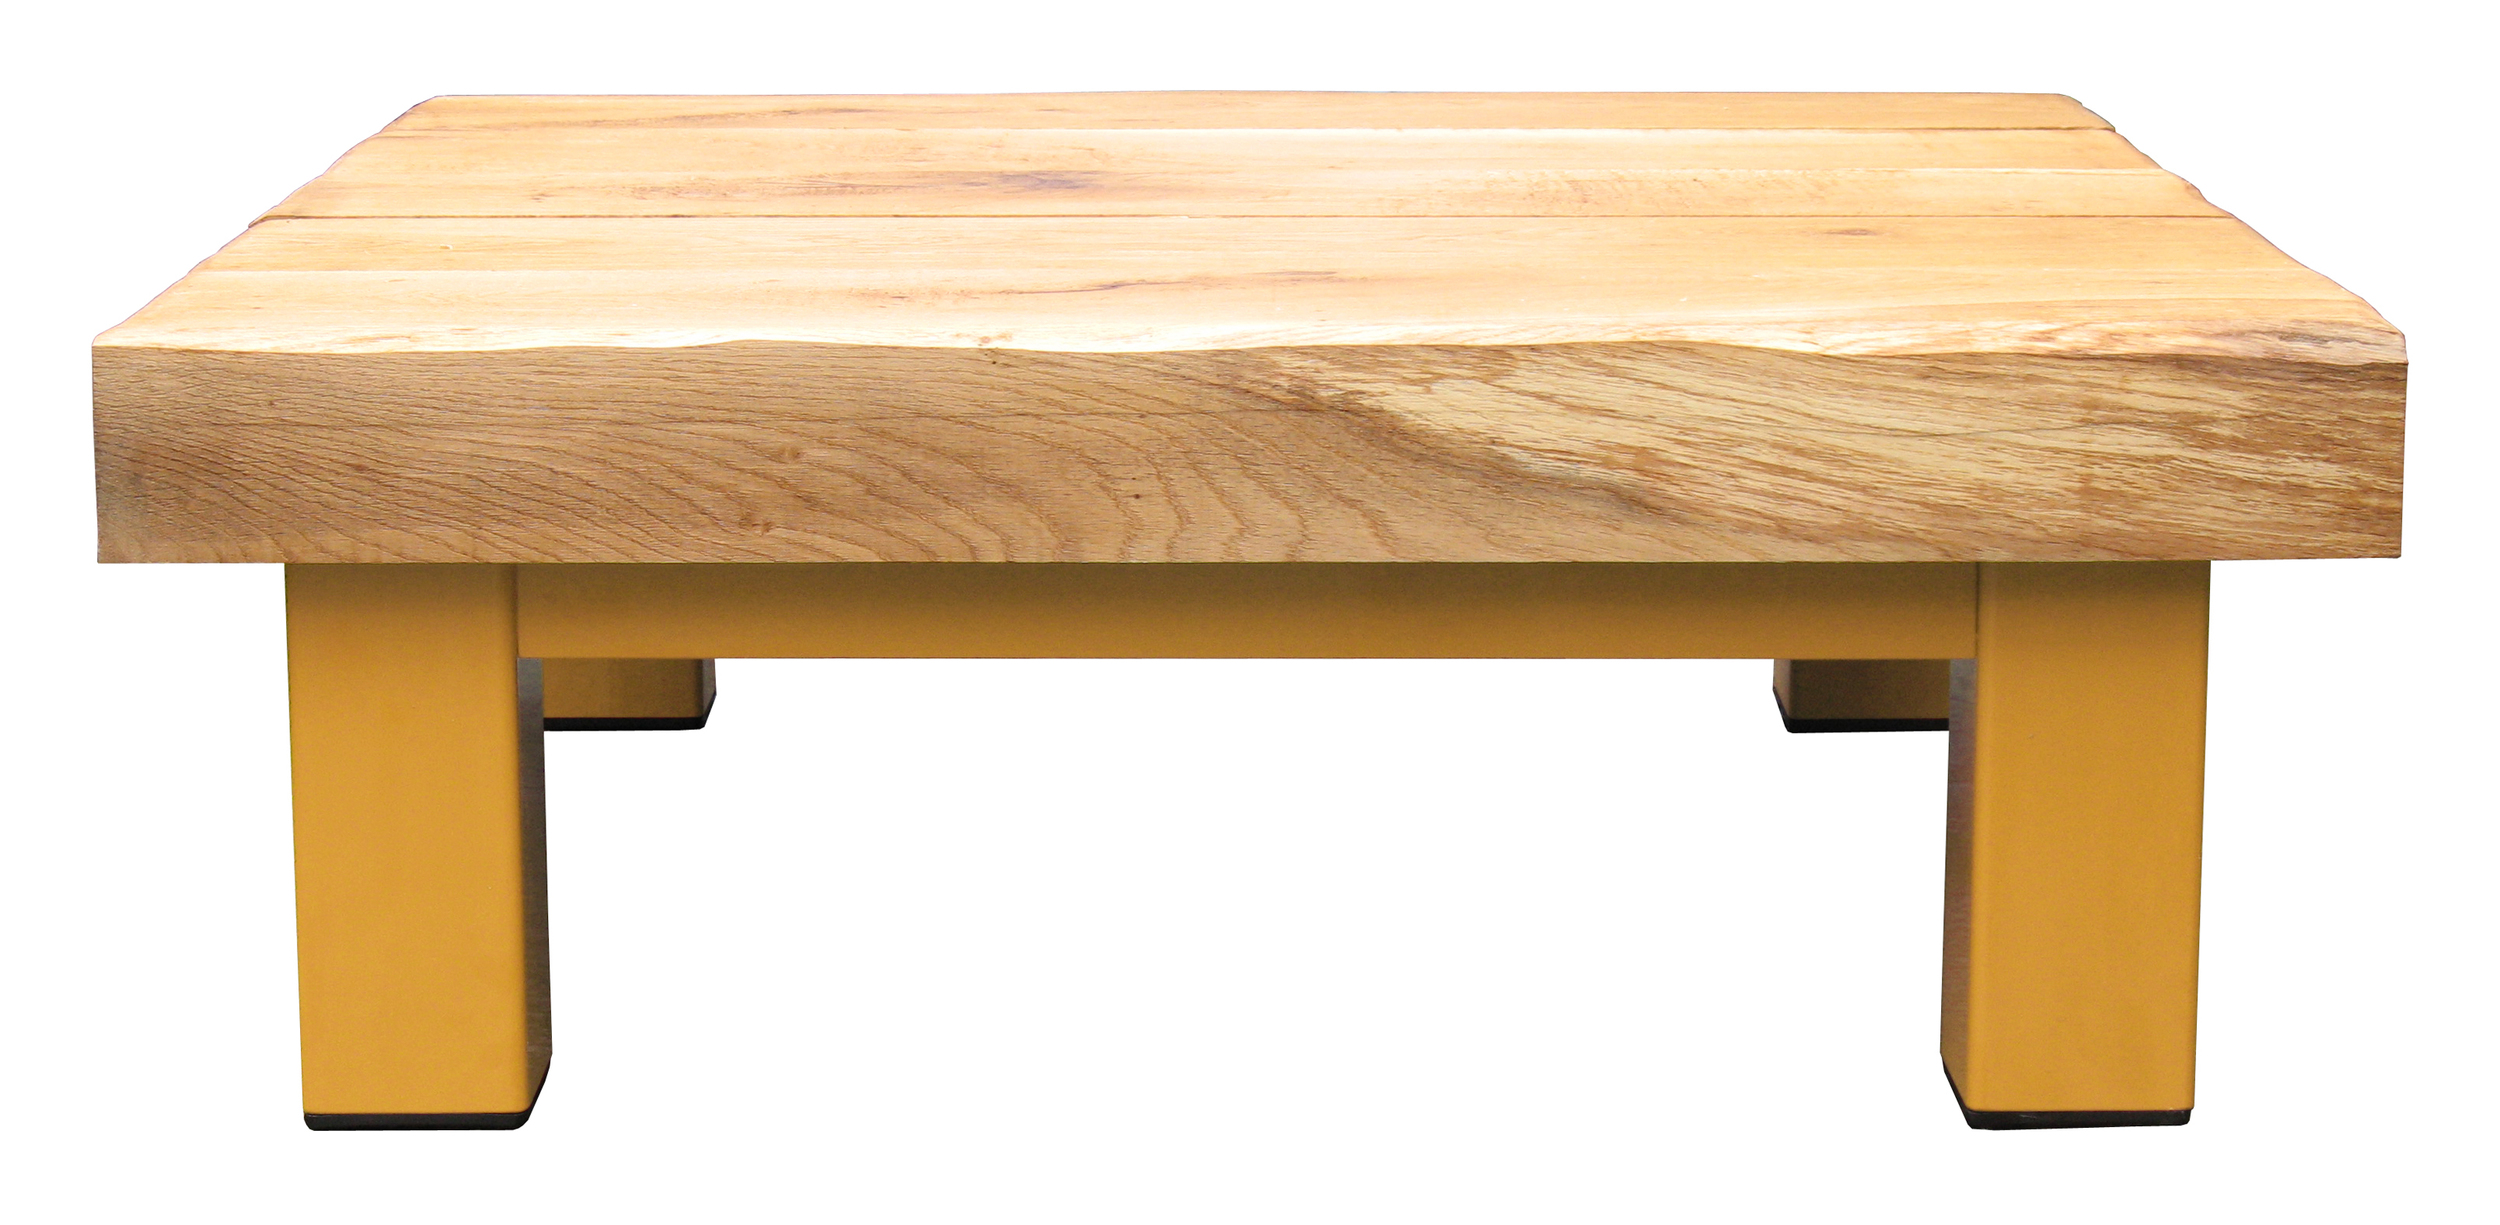 Oak & Iron Furniture Large Coffee Table - Bright Orange